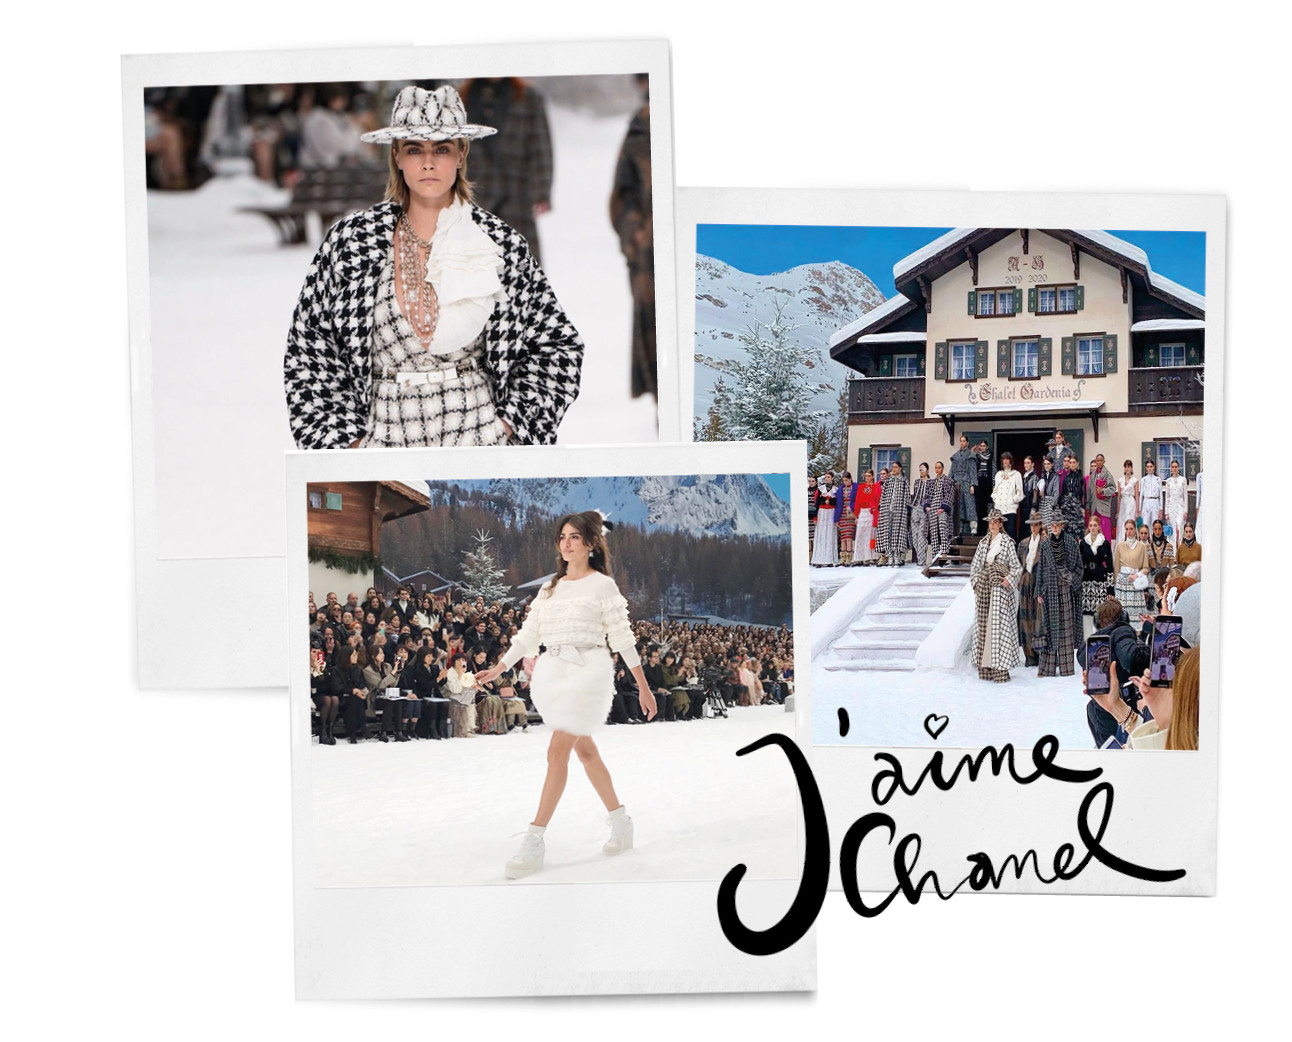 chanelshow Fall winter 2020 wintersport